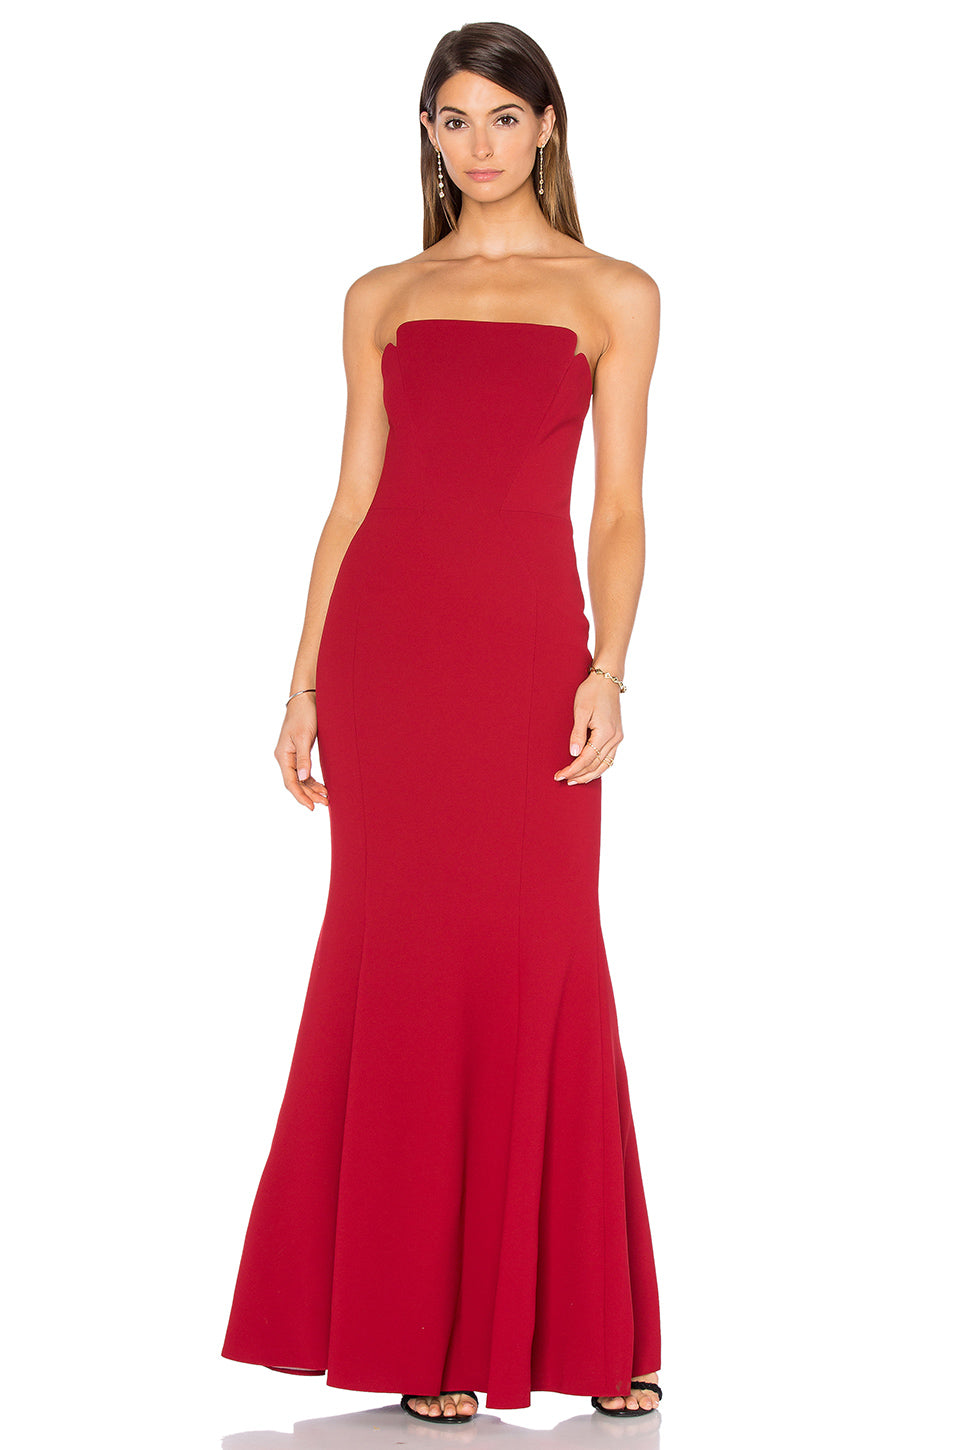 Red gown dress Jill Jill Stuart Robe de soirée rouge